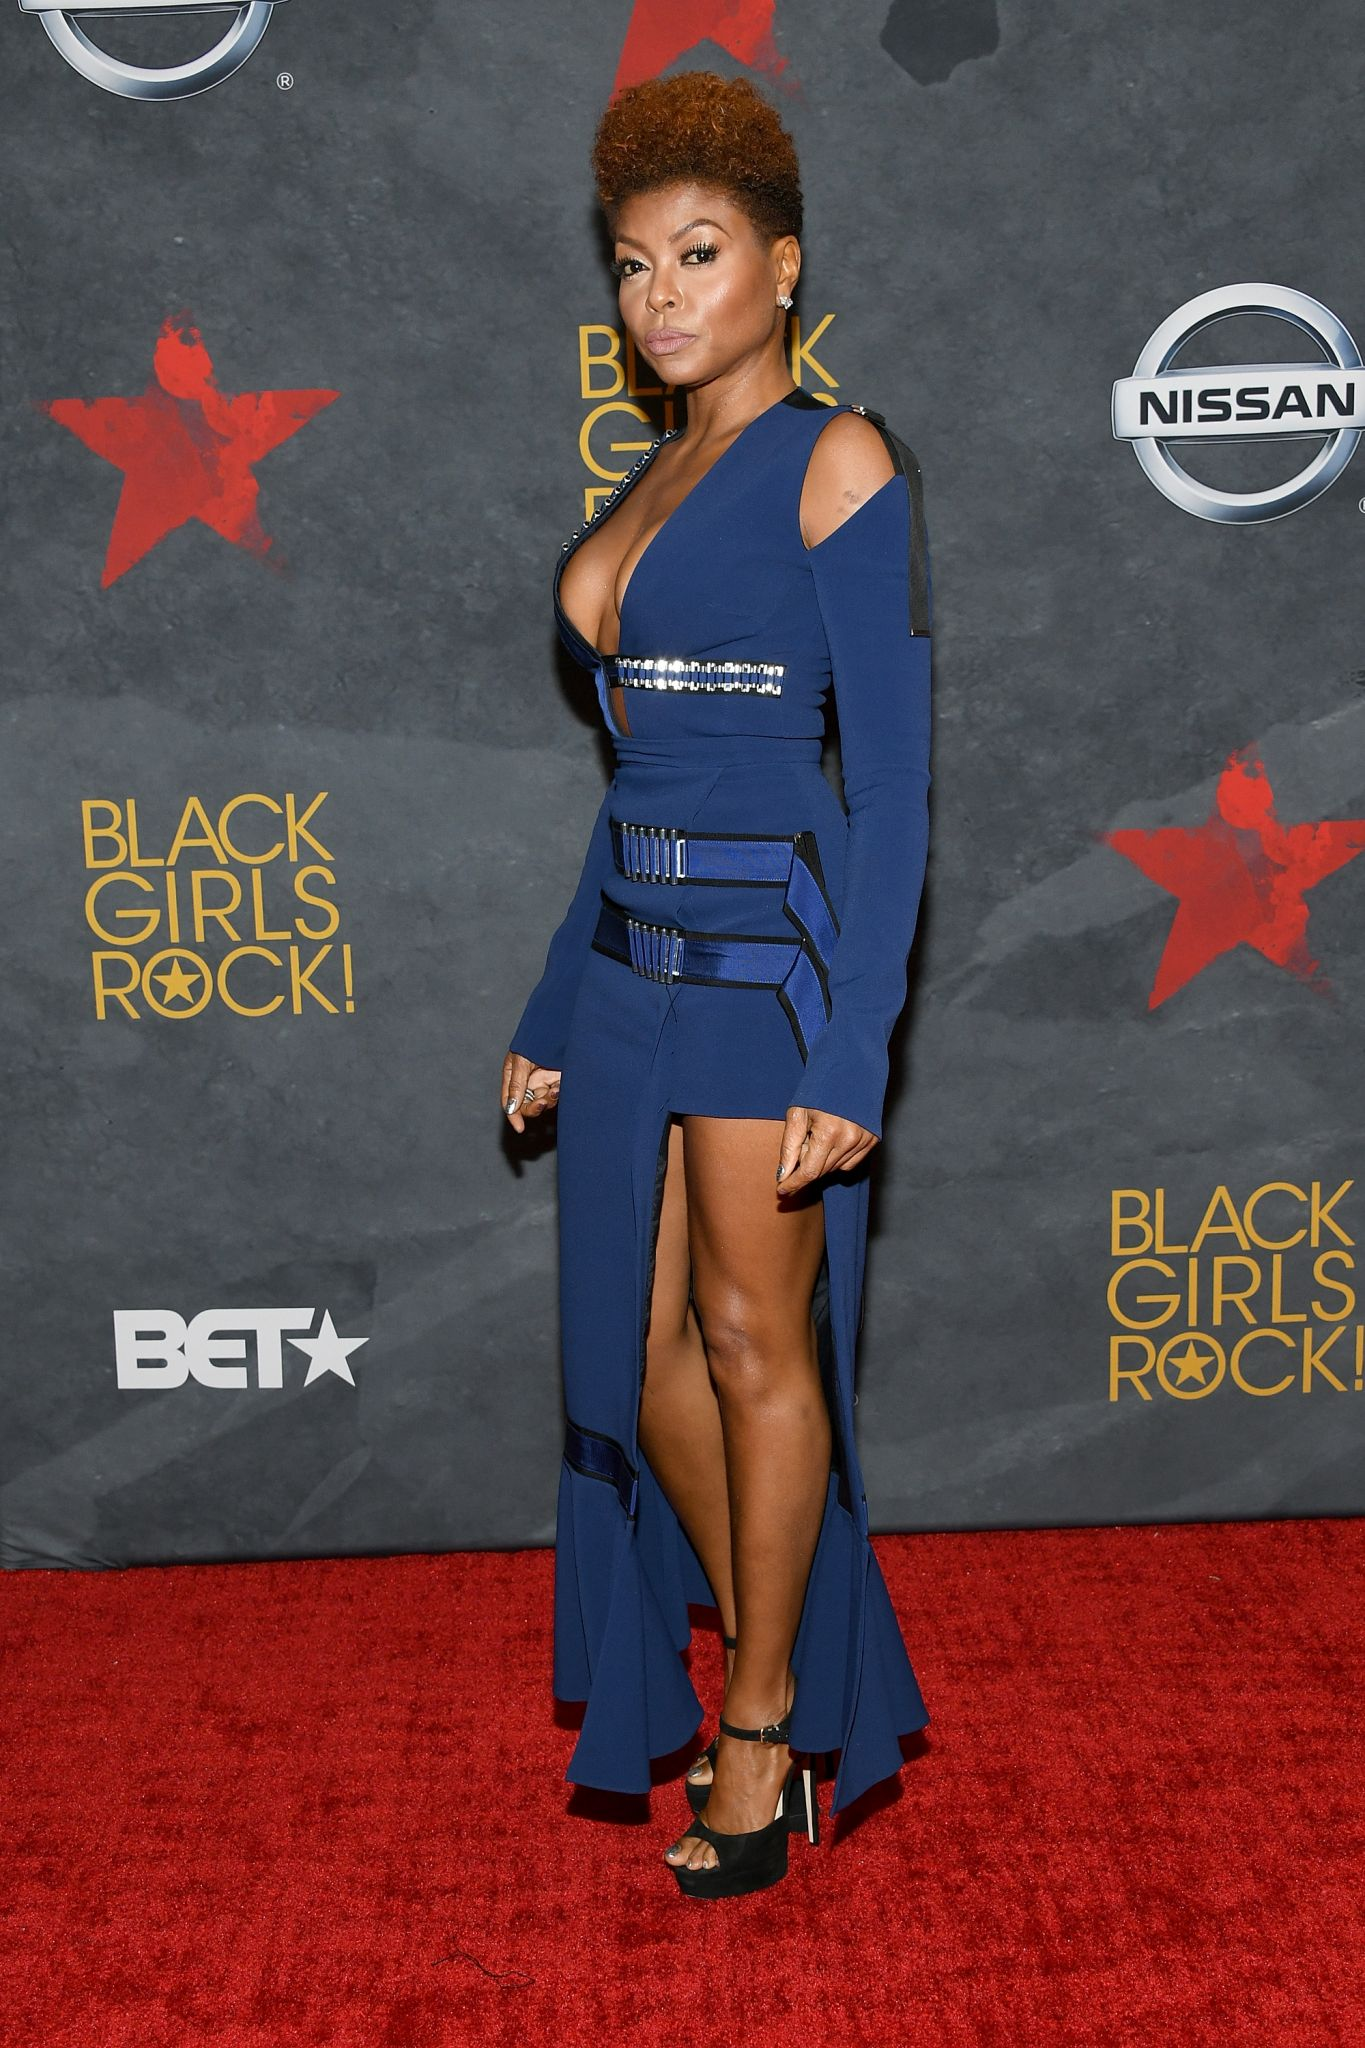 BET's Black Girls Rock awards the best in entertainment, politics ...